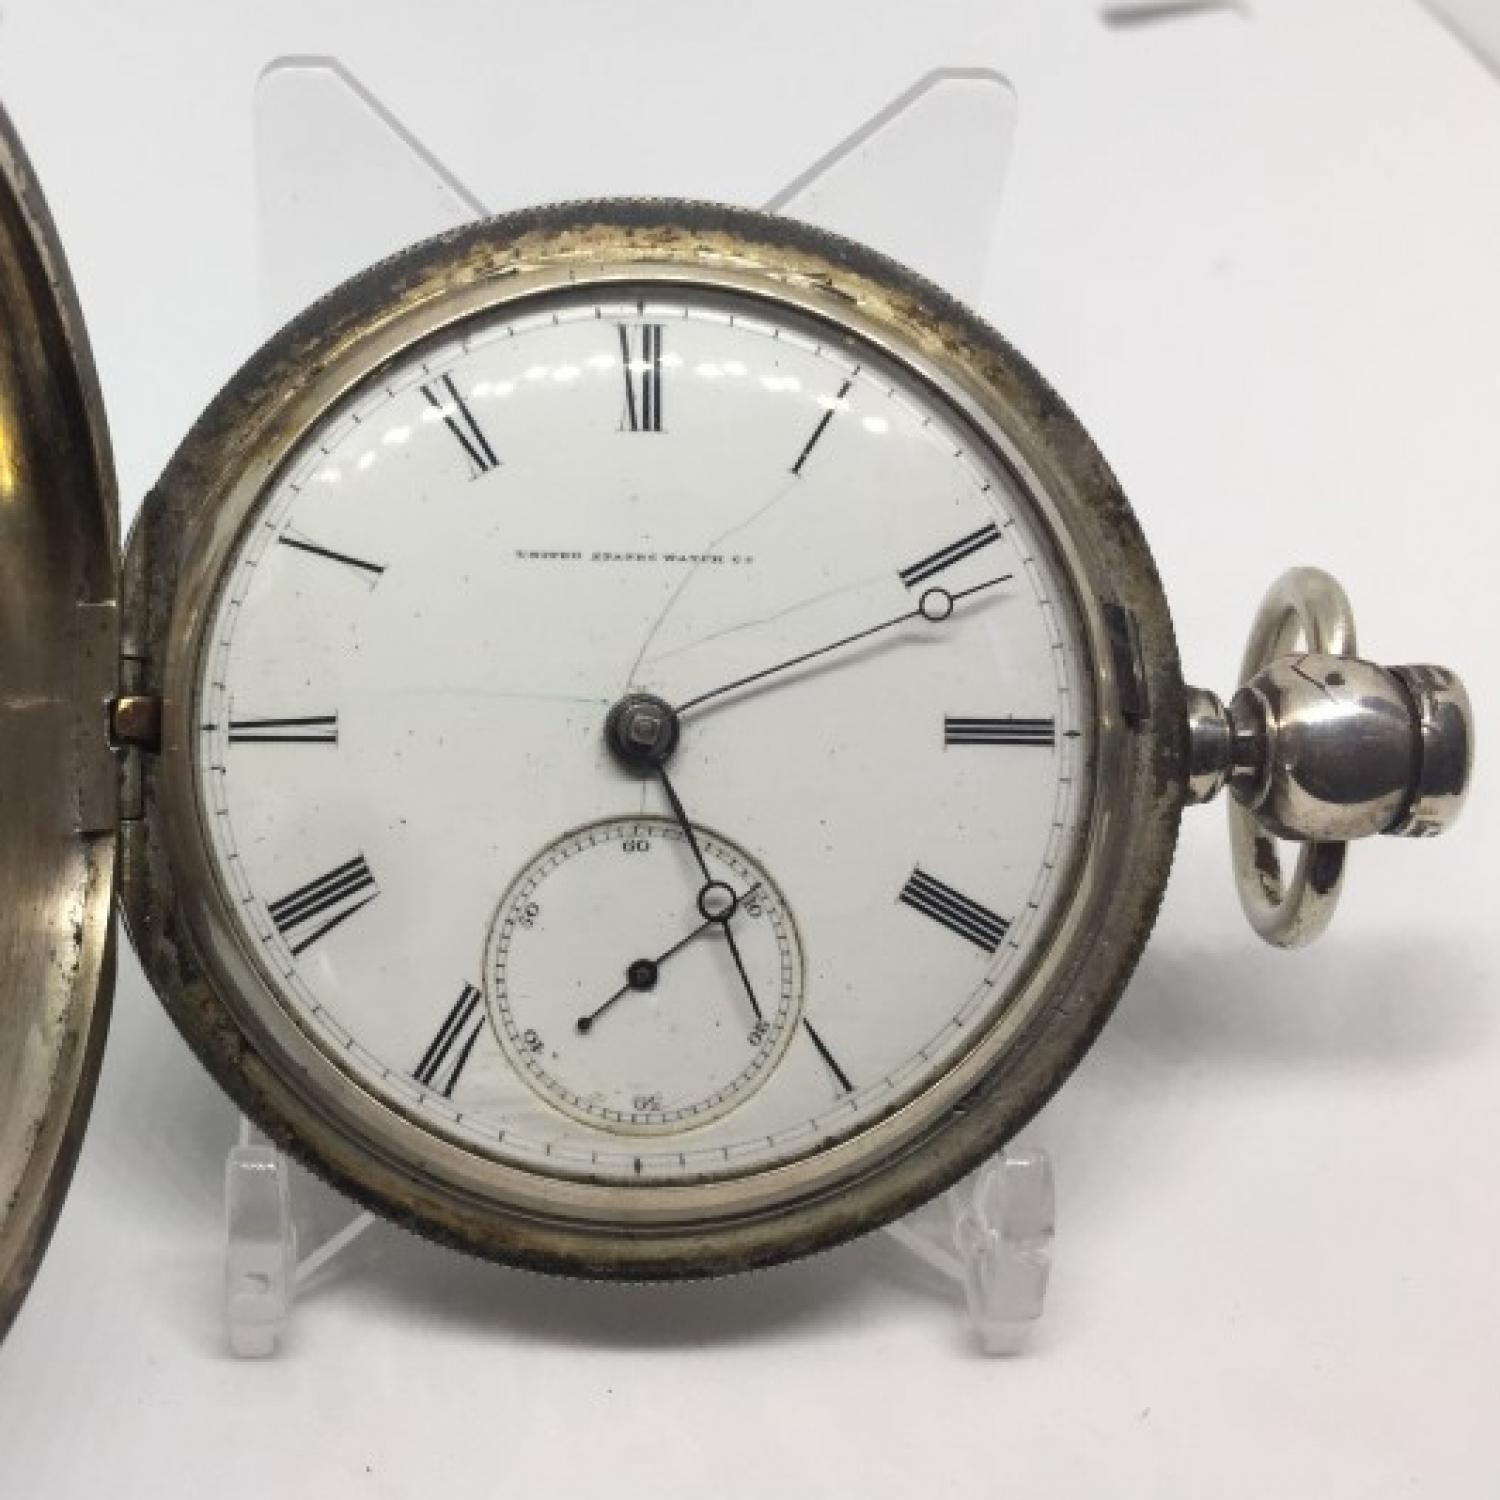 Image of U.S. Watch Co. (Marion, NJ) Fayette Stratton #2051 Dial